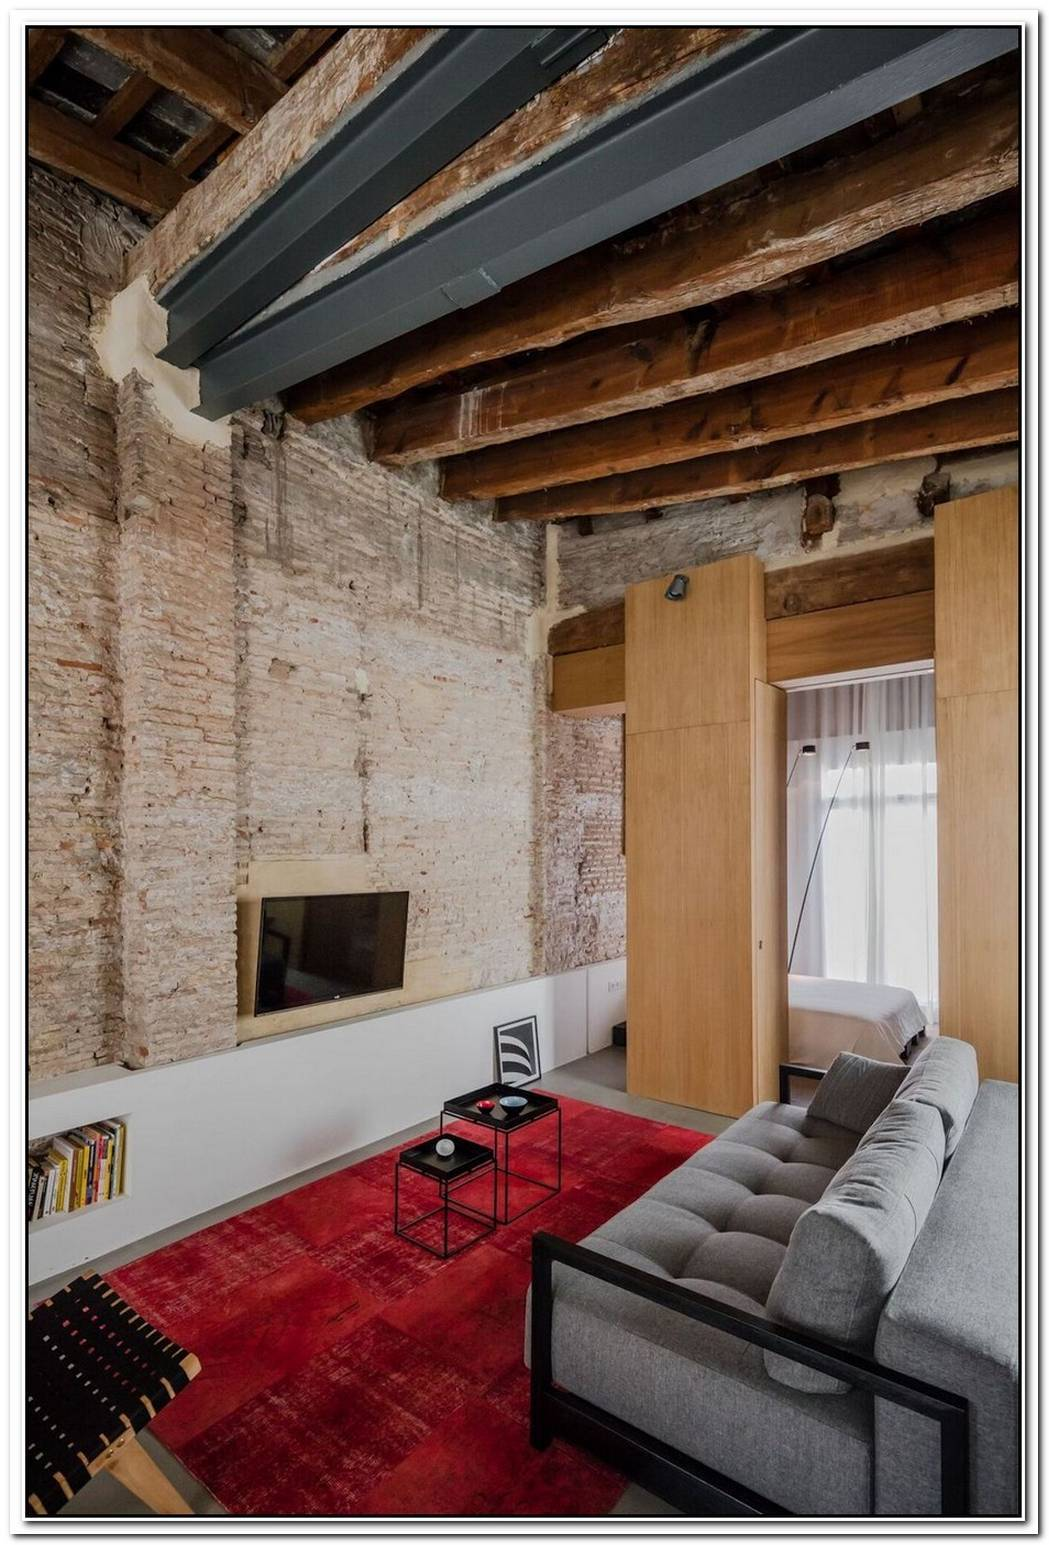 Apartment Renovation Exposes A Rich History Captured In Layers Of Transformation